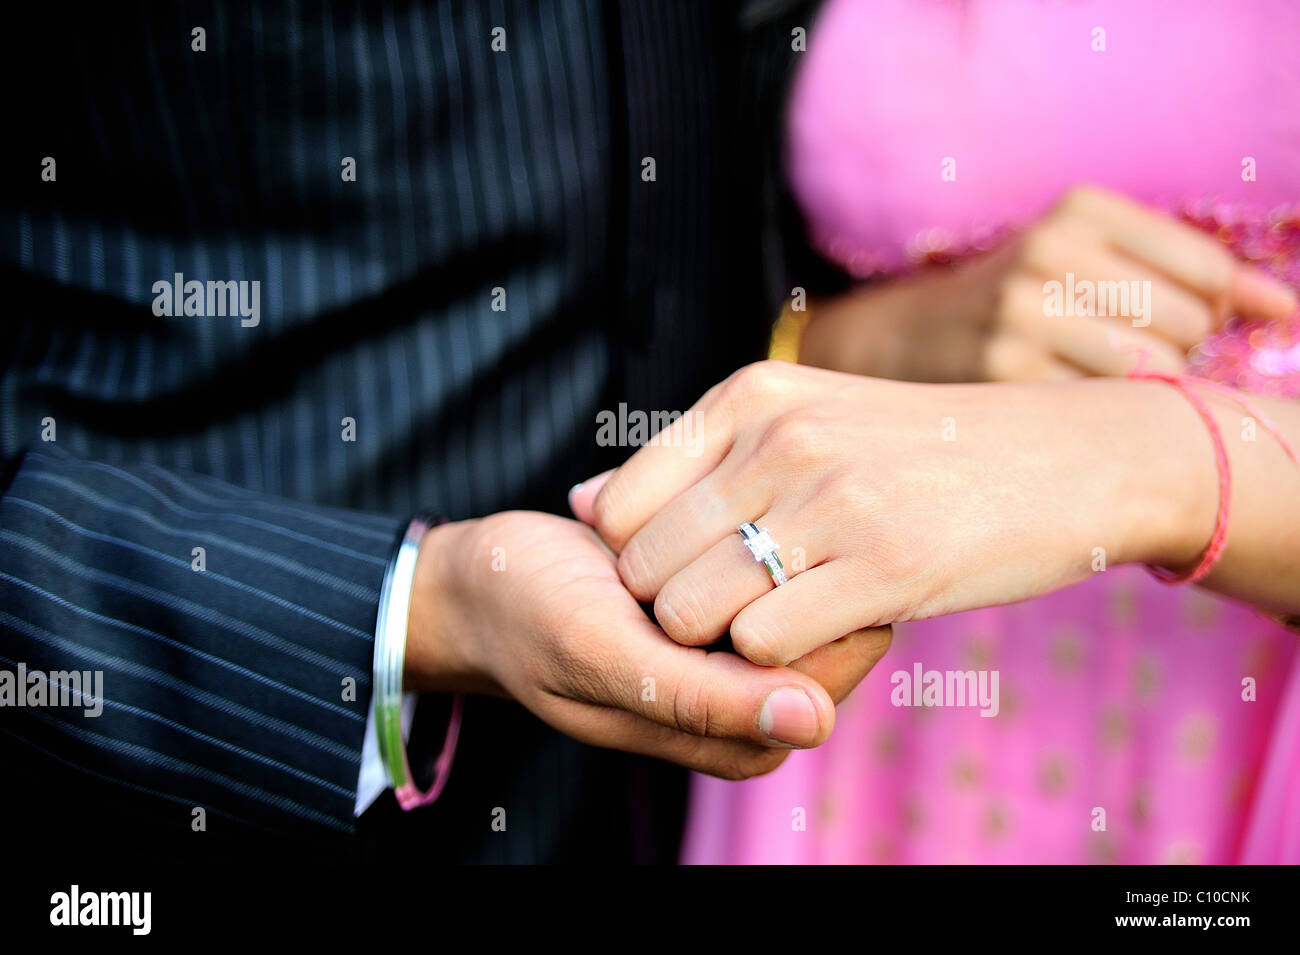 A close up shot of two people holding hands showing and engagement ring they are of Indian origin and Hindu - Stock Image